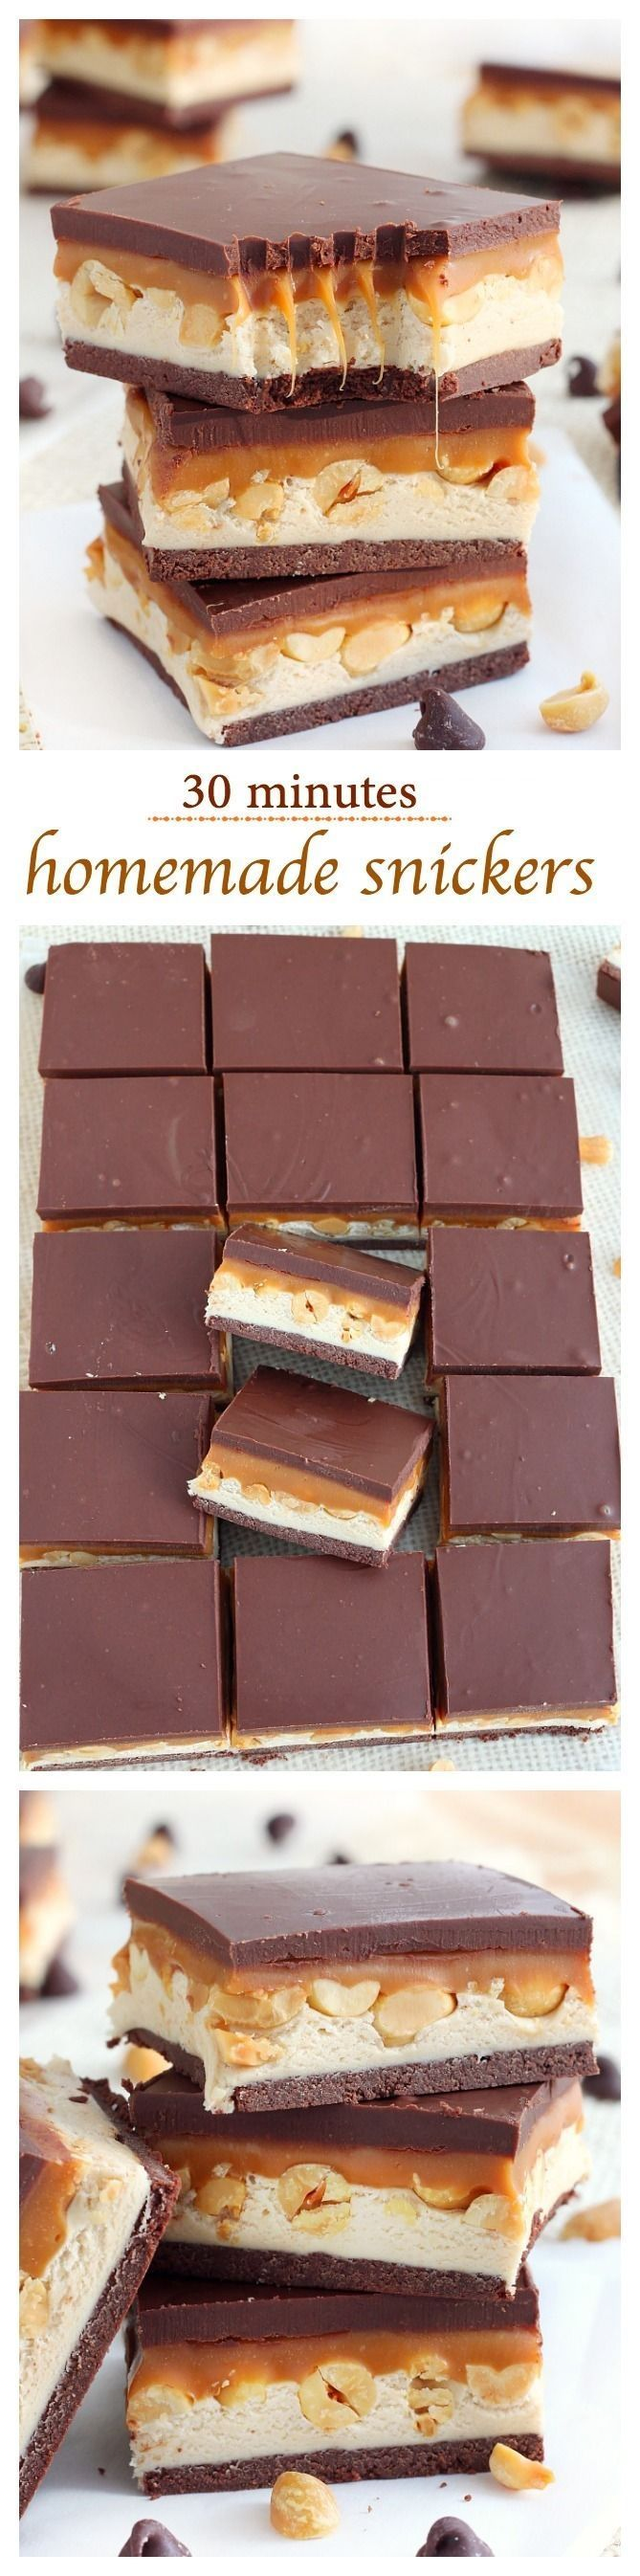 Homemade snickers bars! Nougat, peanuts and caramel sandwiched between two chocolate layers, these homemade snickers bars come together in 30 minutes tops! Faster than going to the store to buy some!